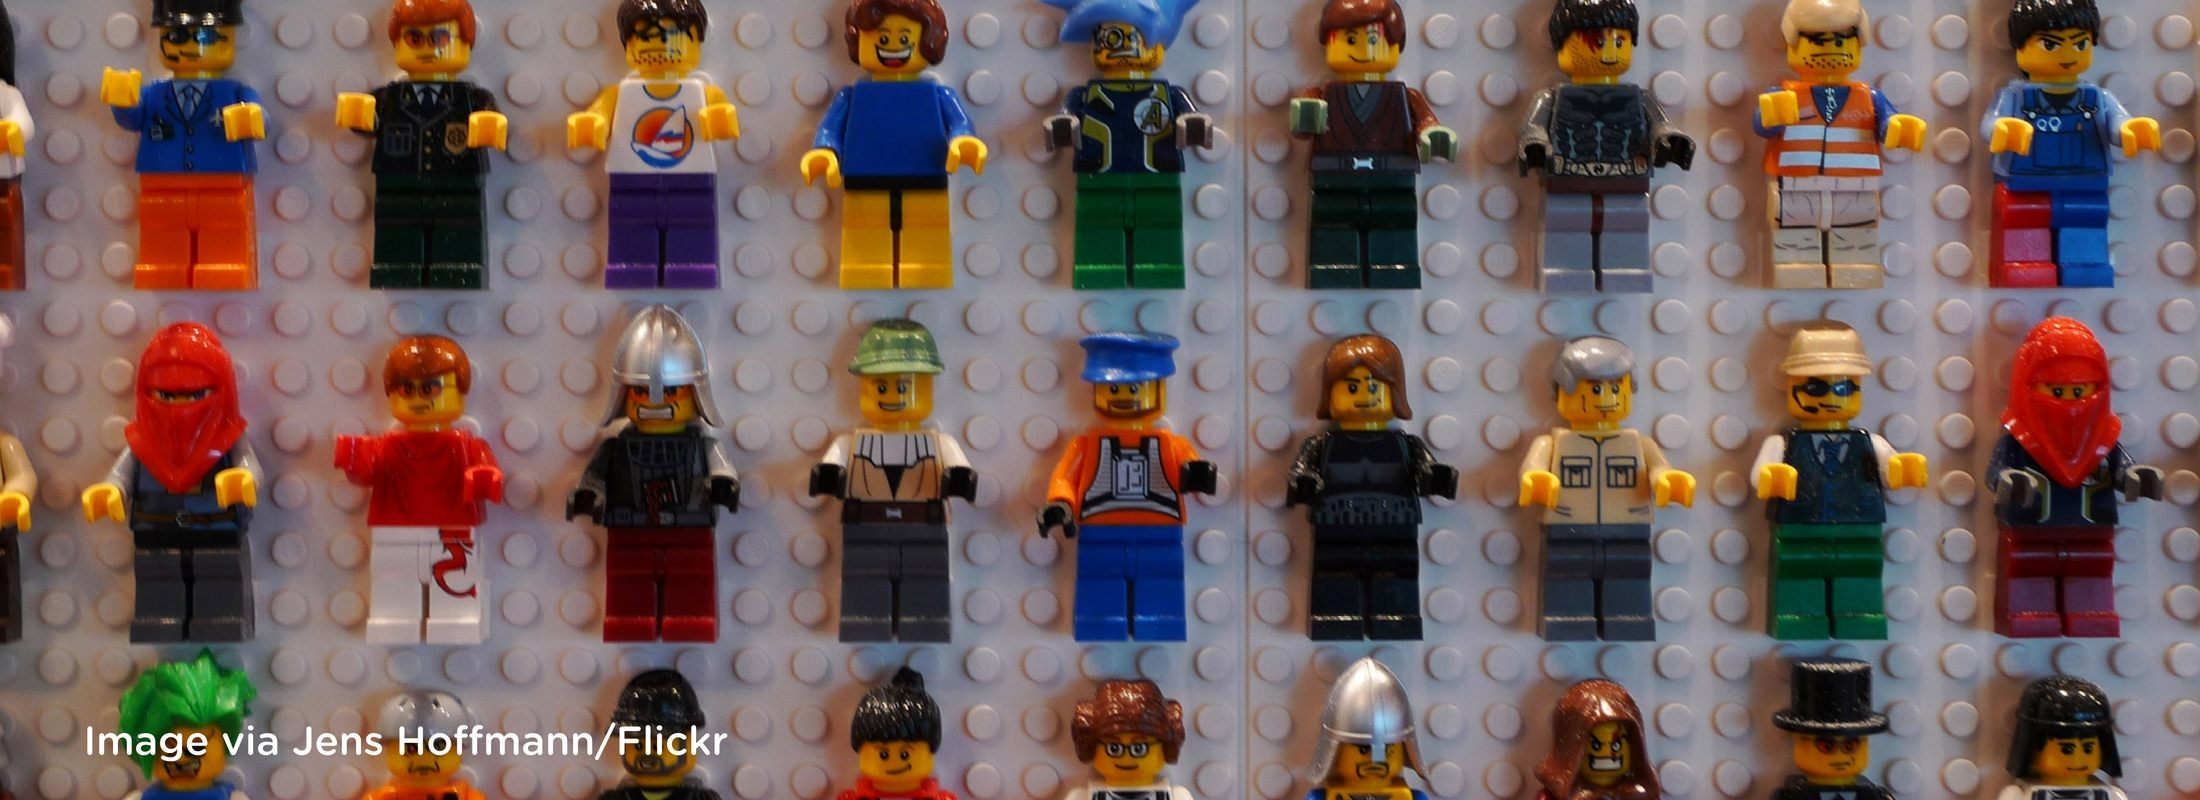 Different kinds of Lego people lined up in rows on a grey surface